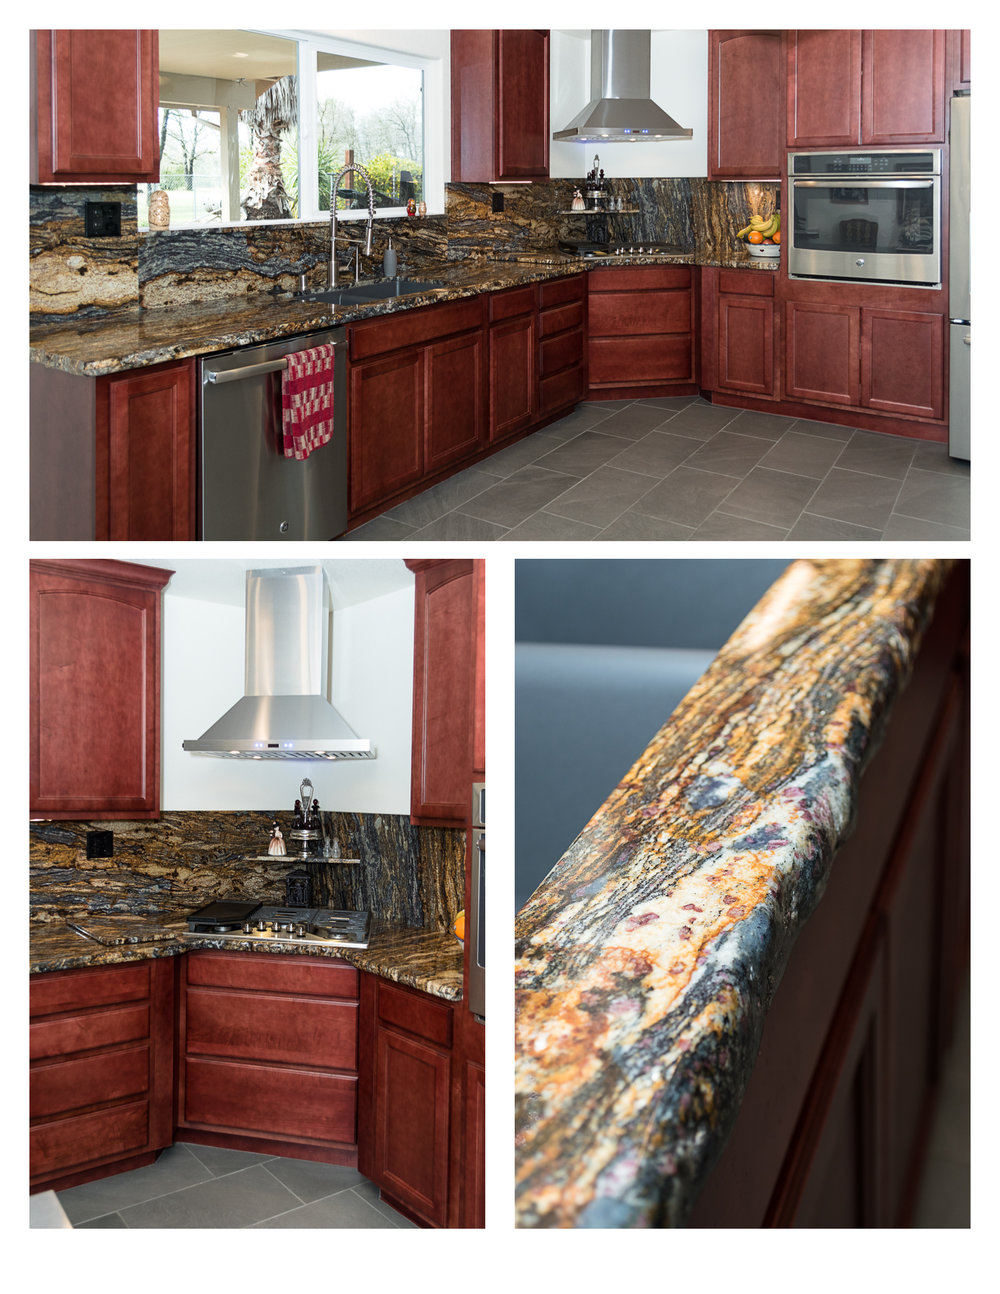 If you want to make a bold statement, this is the granite for you! So stunning!!